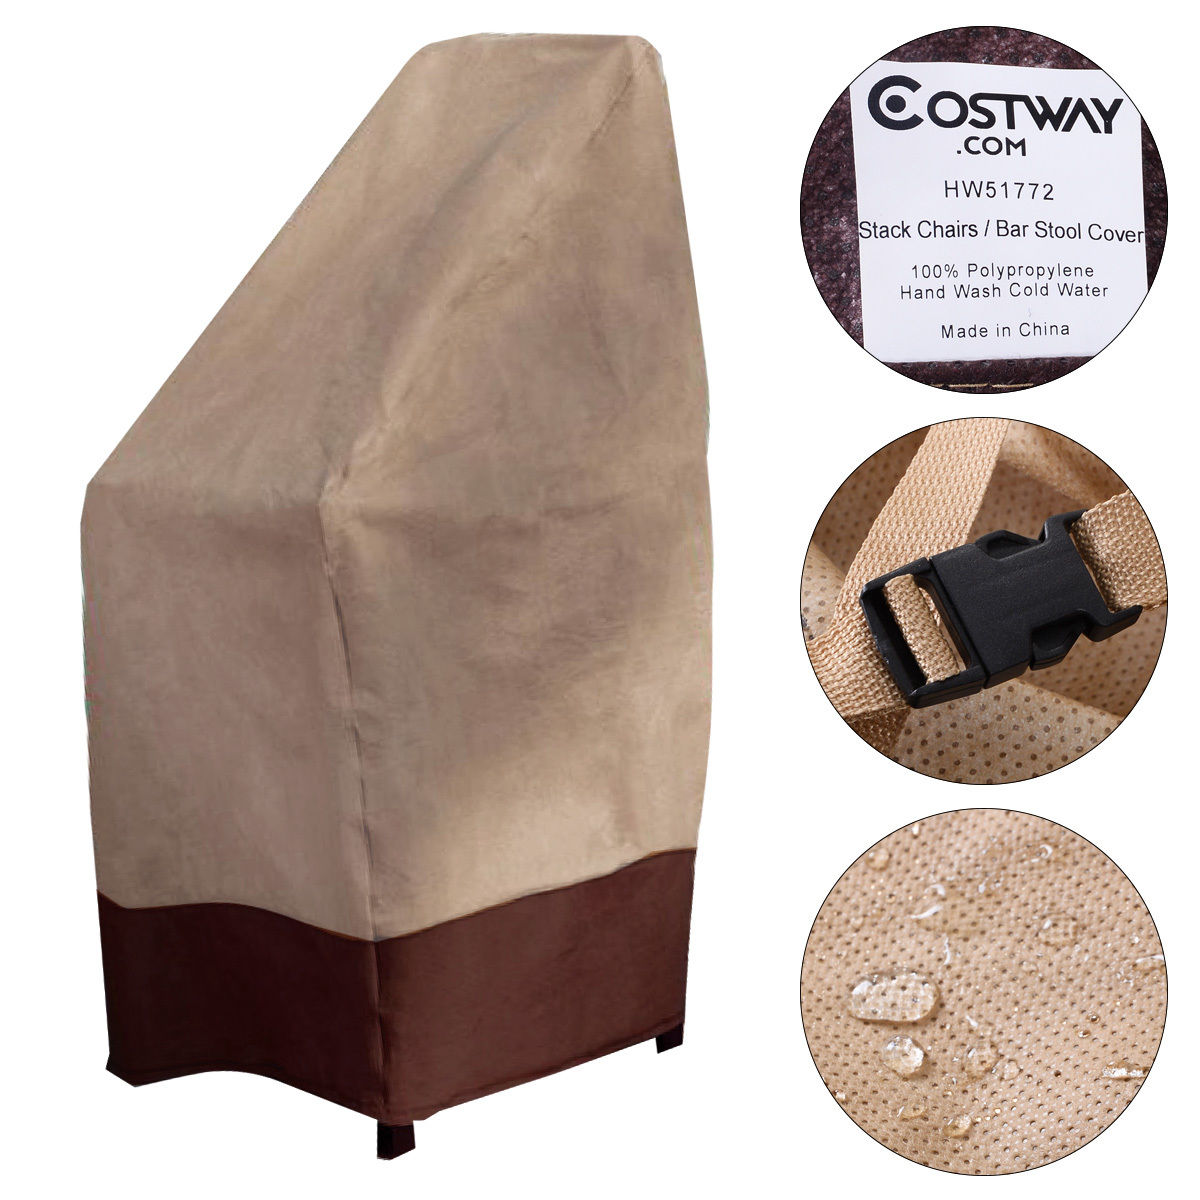 Costway Waterproof Bar Stool Cover Outdoor Patio Garden All Season Furniture Protection  sc 1 st  Walmart & Costway Waterproof Bar Stool Cover Outdoor Patio Garden All Season ... islam-shia.org